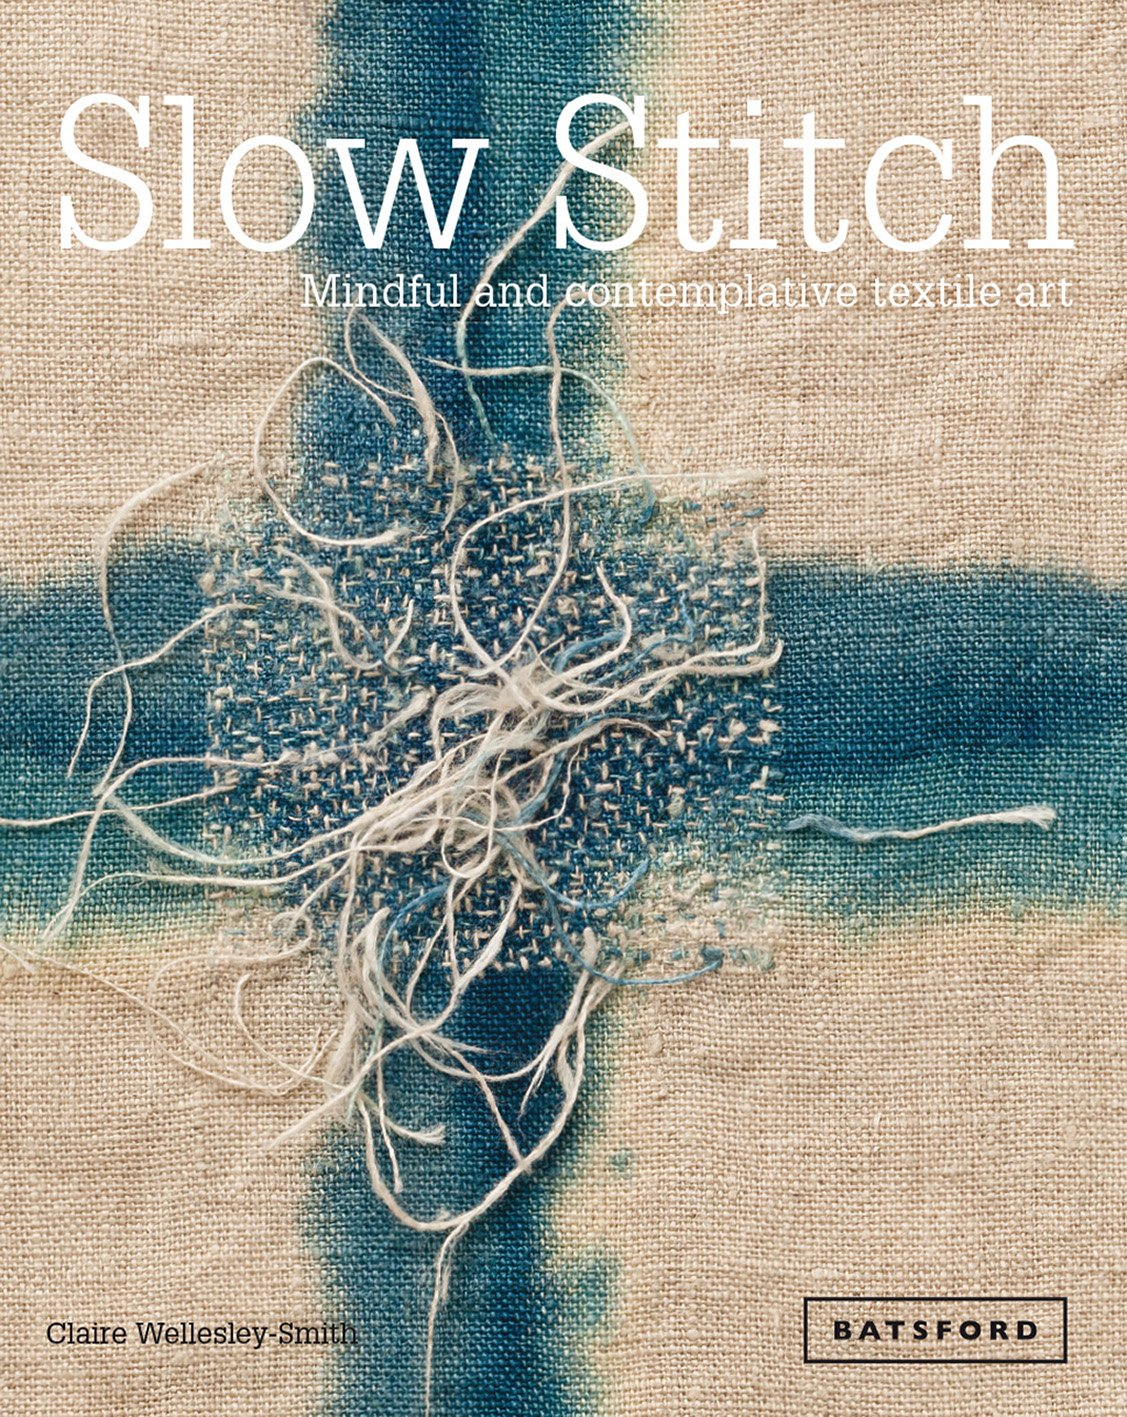 Slow Stitch: Mindful and Contemplative Textile Art: Amazon.es: Claire Wellesley-Smith: Libros en idiomas extranjeros